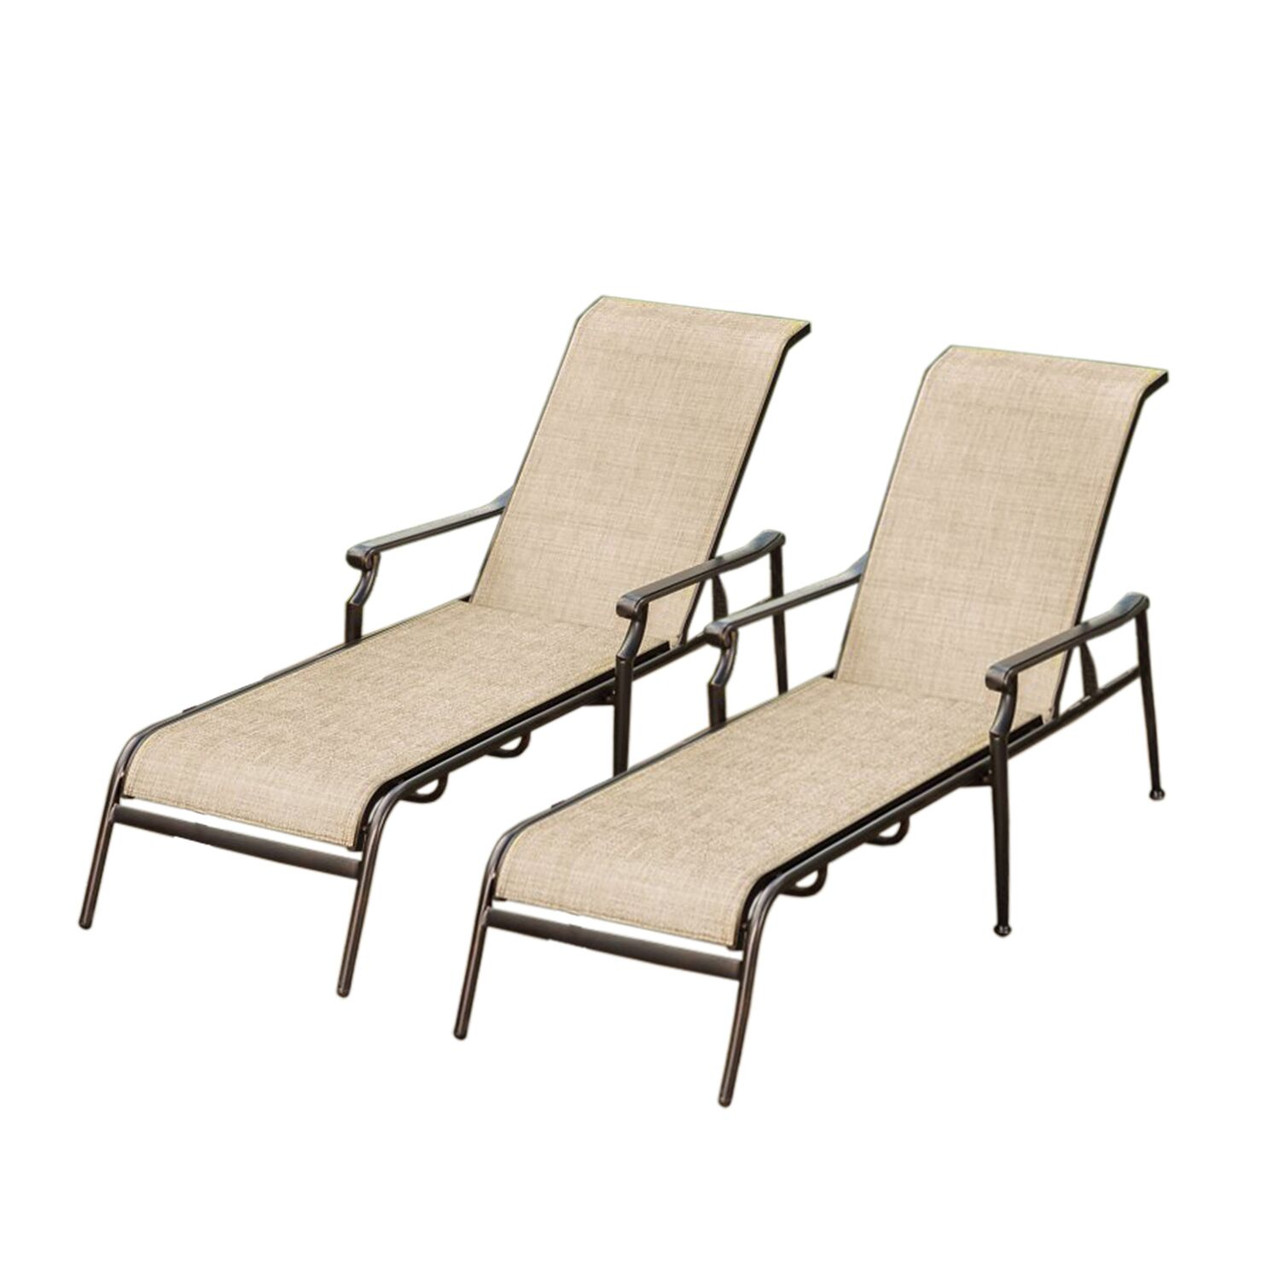 Set Of 2 Beige Brown Outdoor Aluminum Reclining Patio Chaise